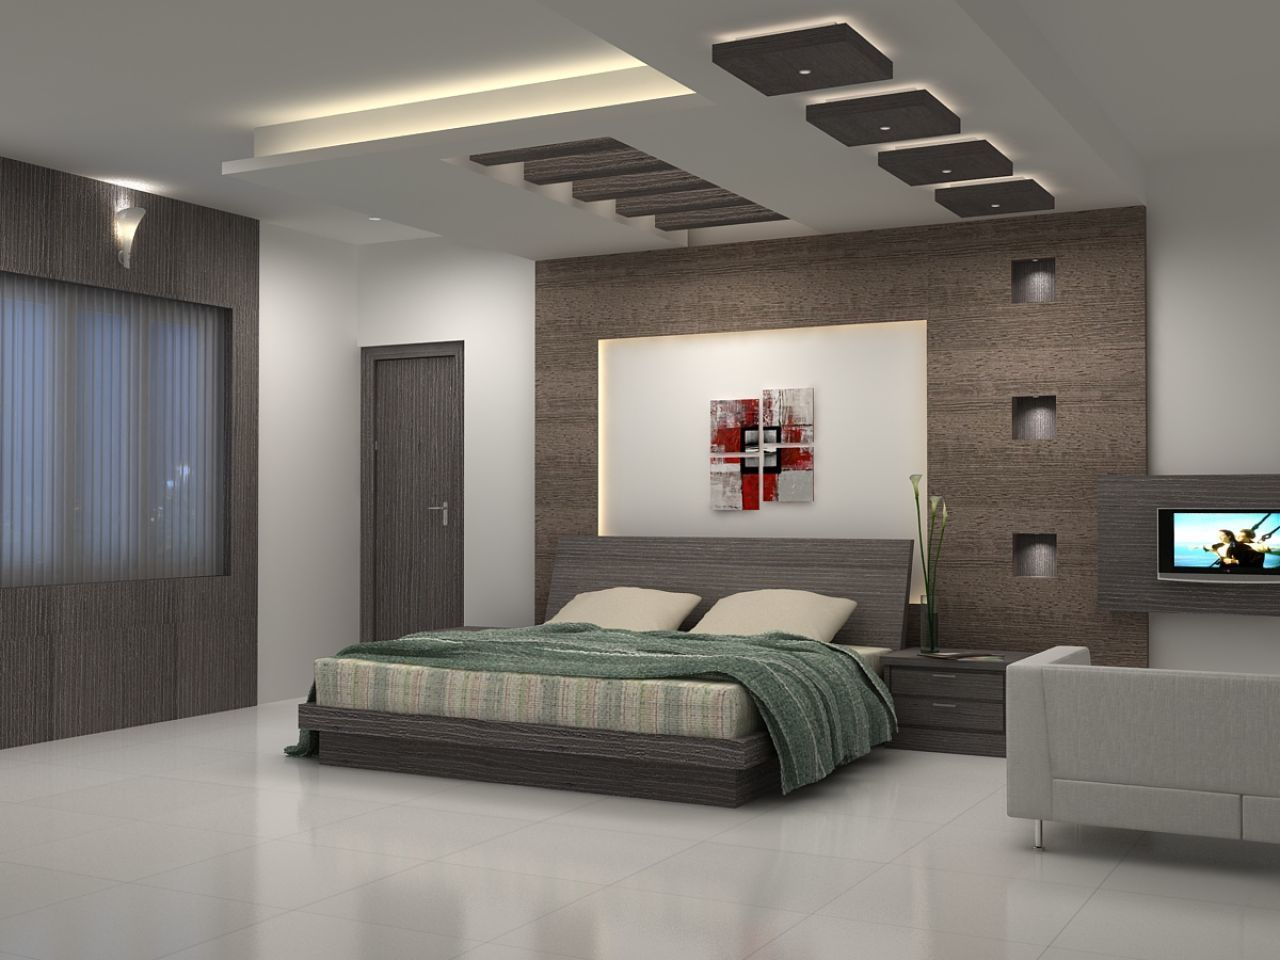 Image Result For Wooden False Ceiling Design For Master Bedroom Bedroom False Ceiling Design Ceiling Design Bedroom Pop False Ceiling Design